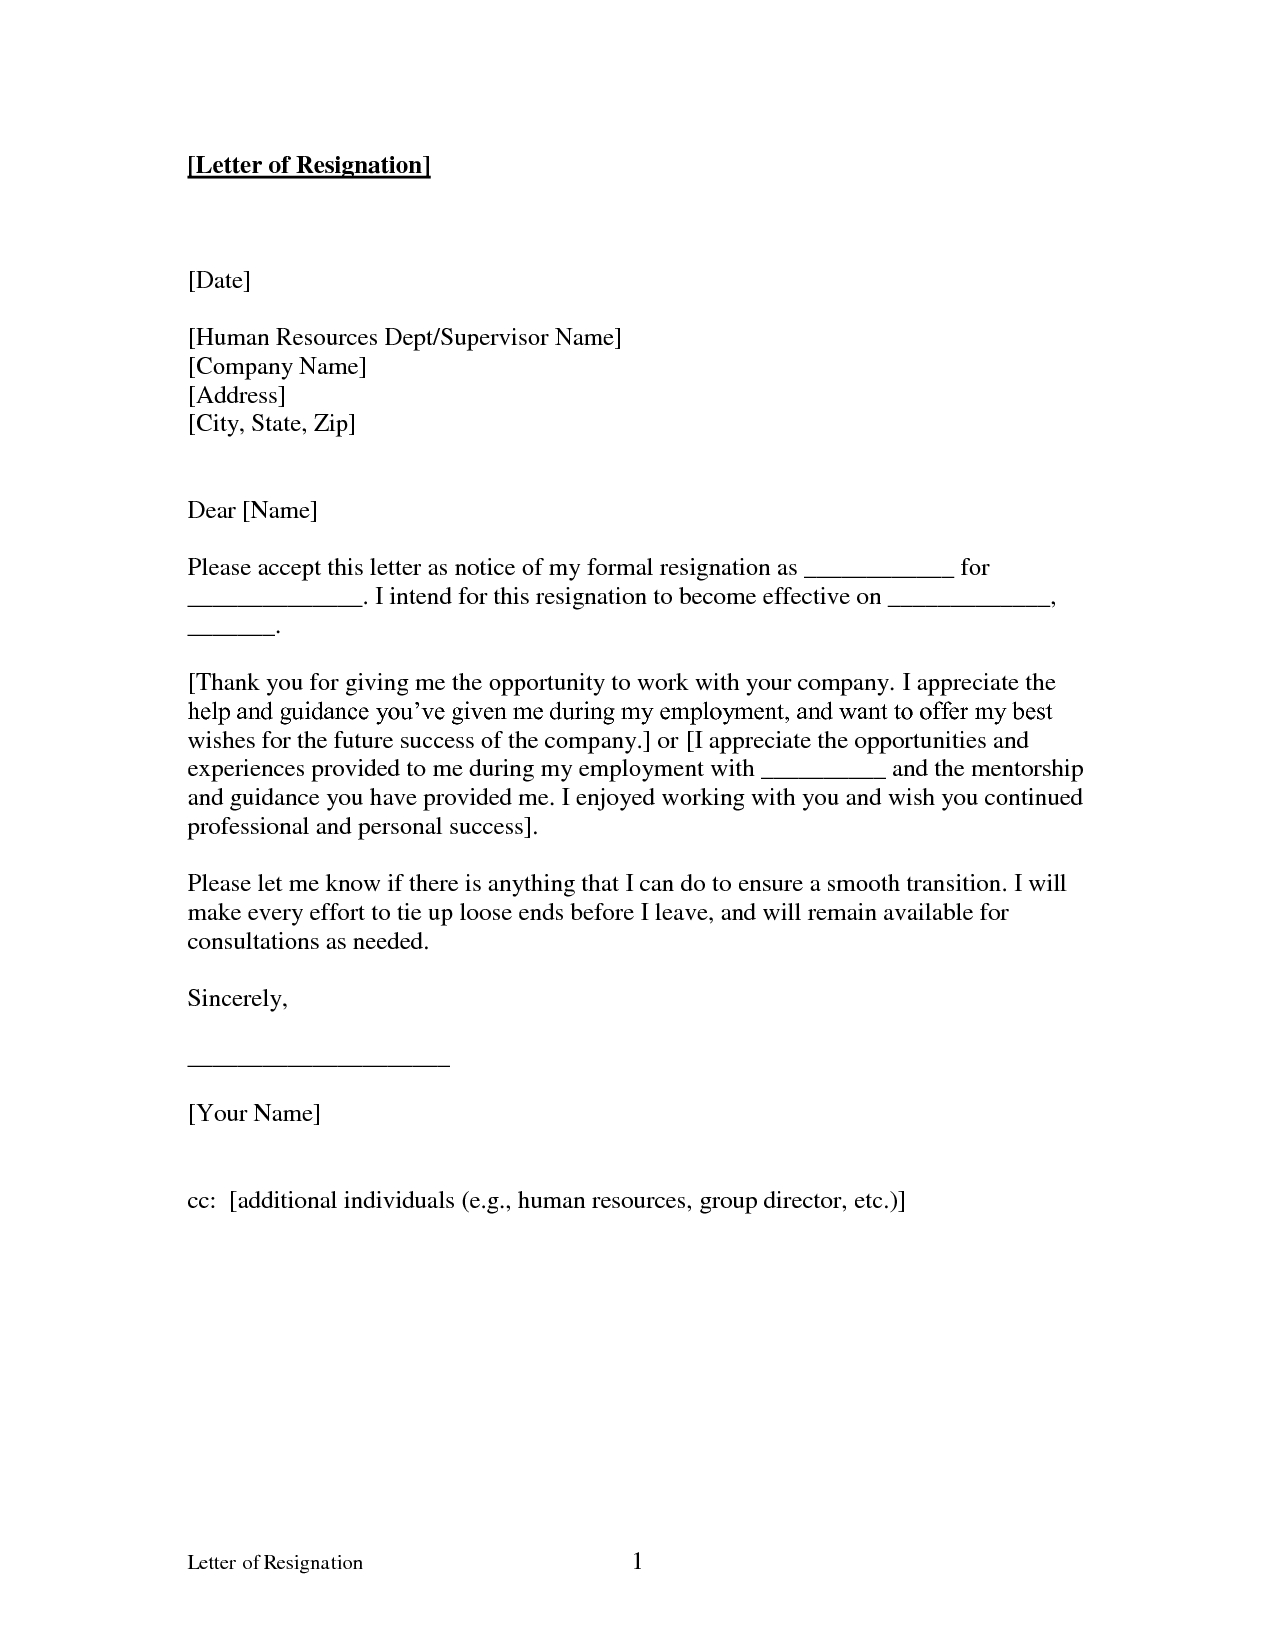 Guardianship Letter In Case Of Death Template - Printable Sample Letter Of Resignation form